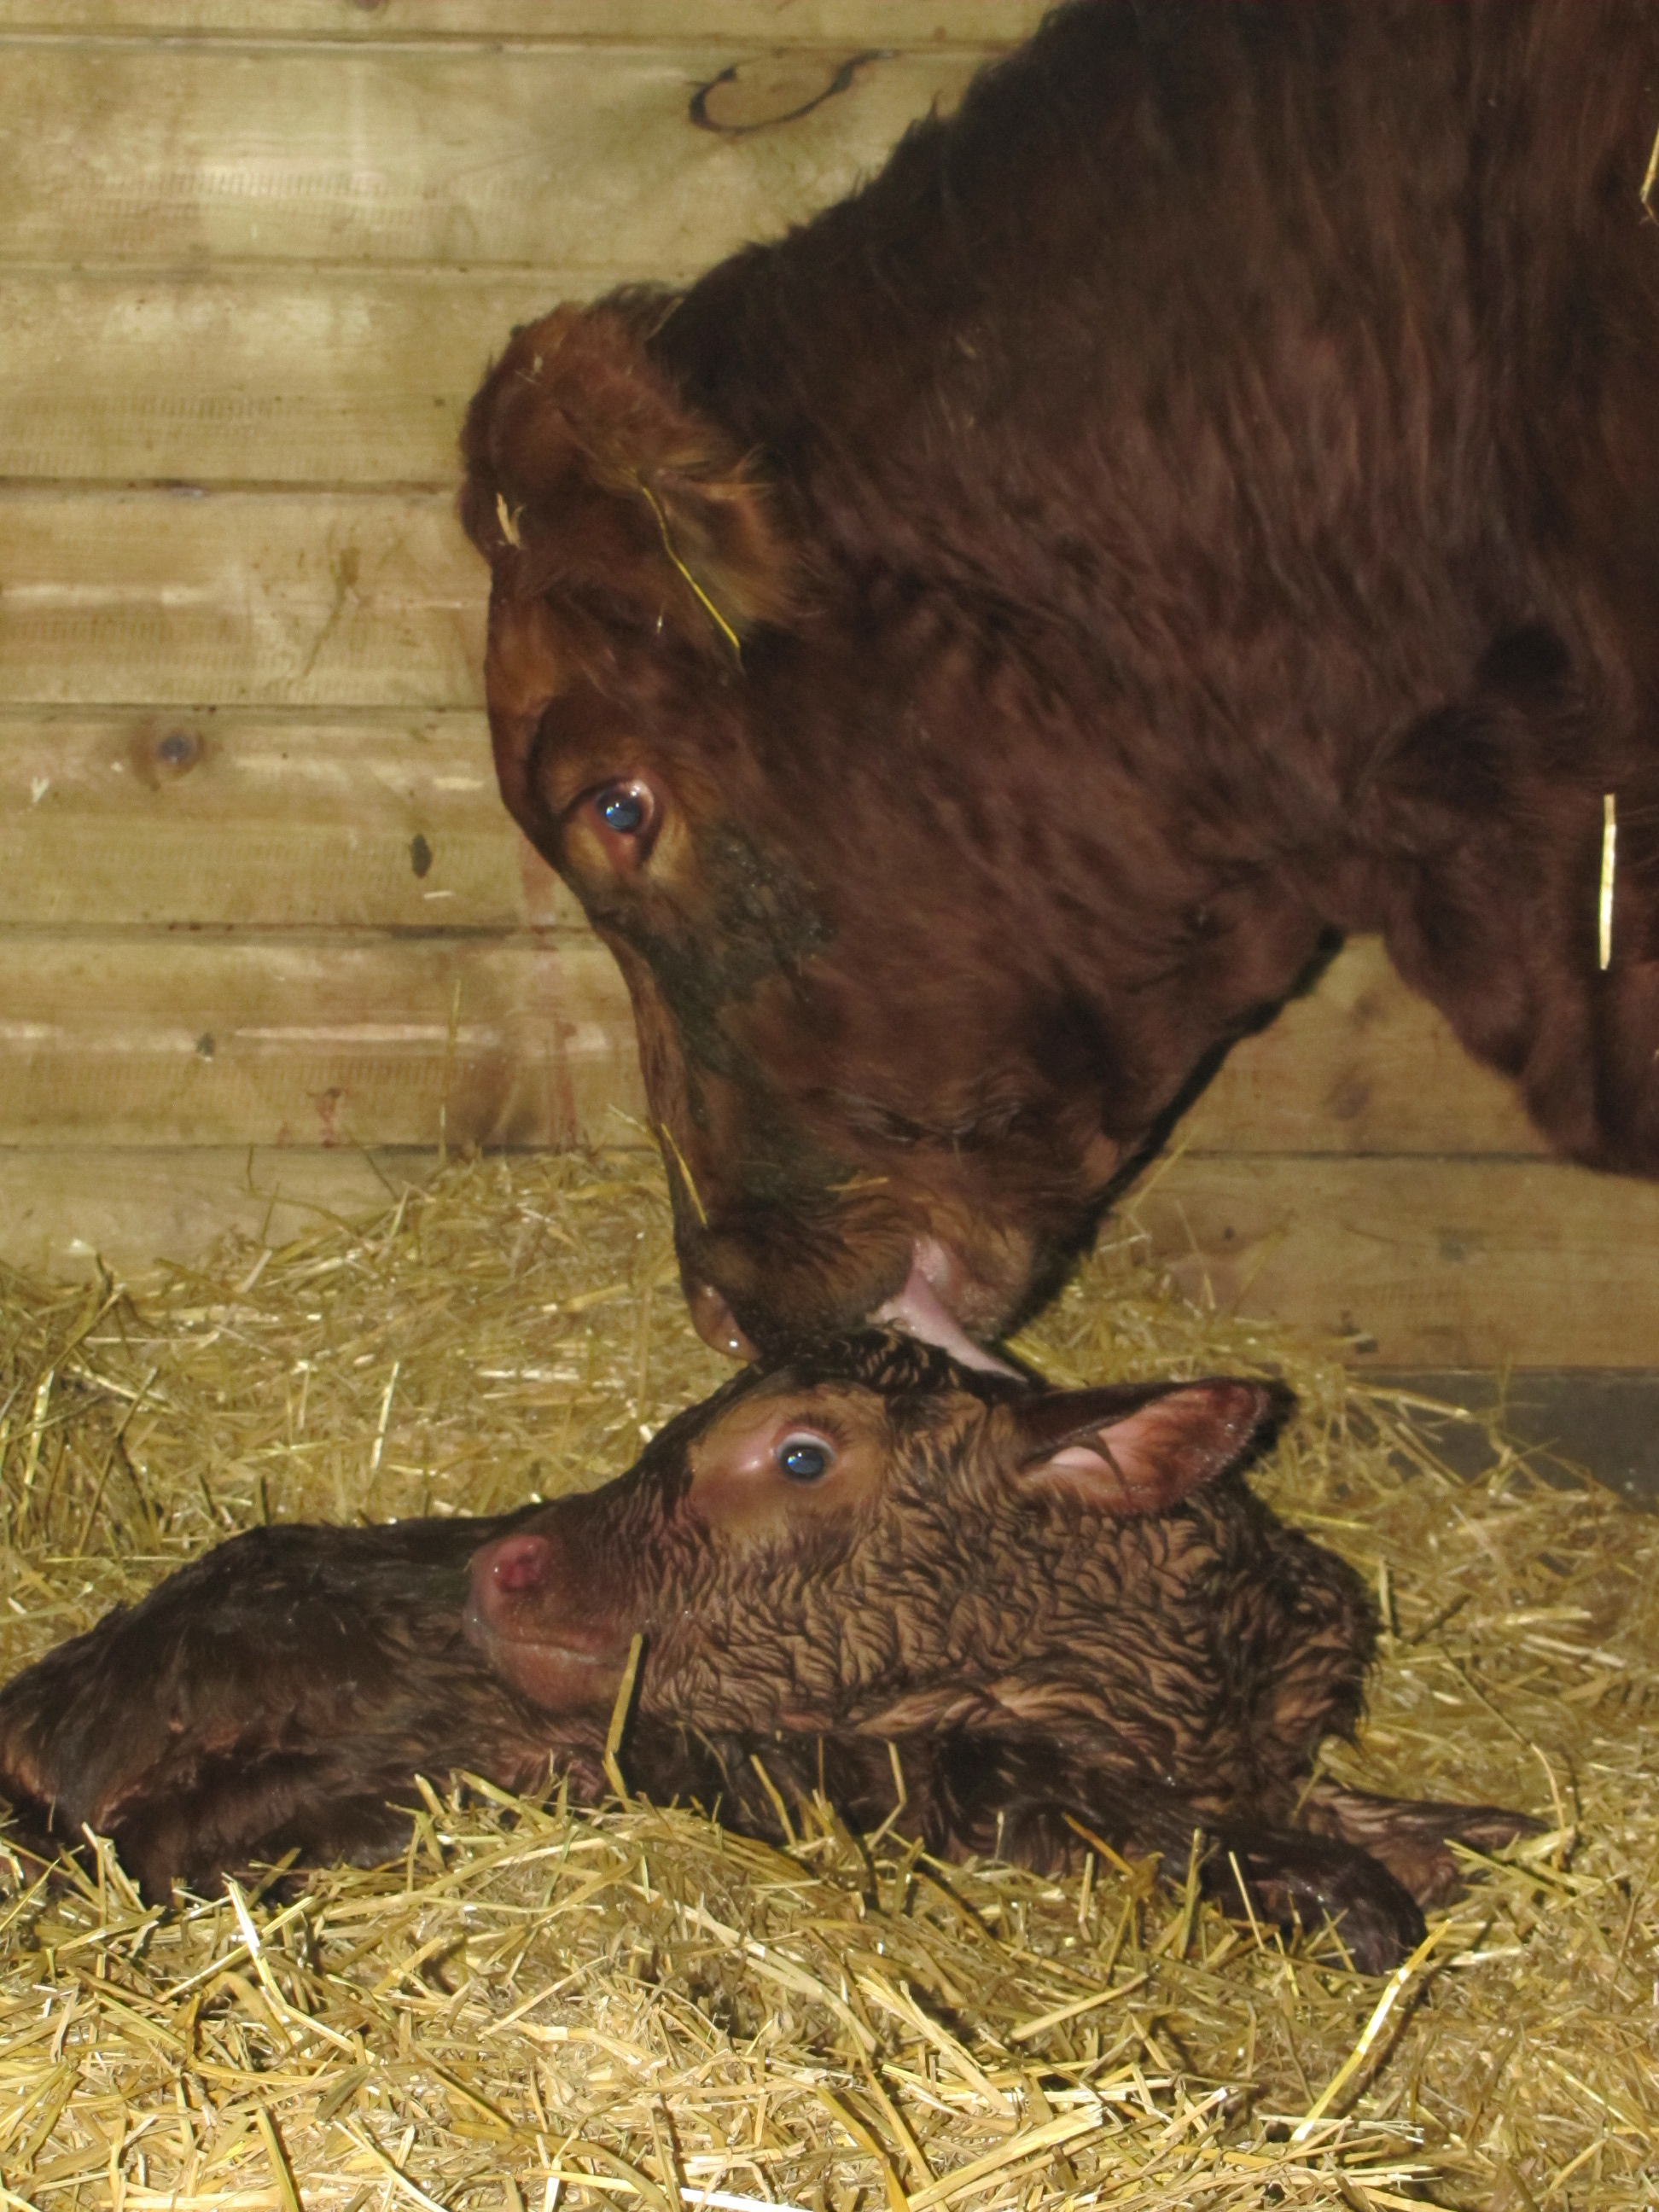 Calving in warmer weather or a clean barn could be the key to minimizing calf deaths at birth. (NDSU Photo)